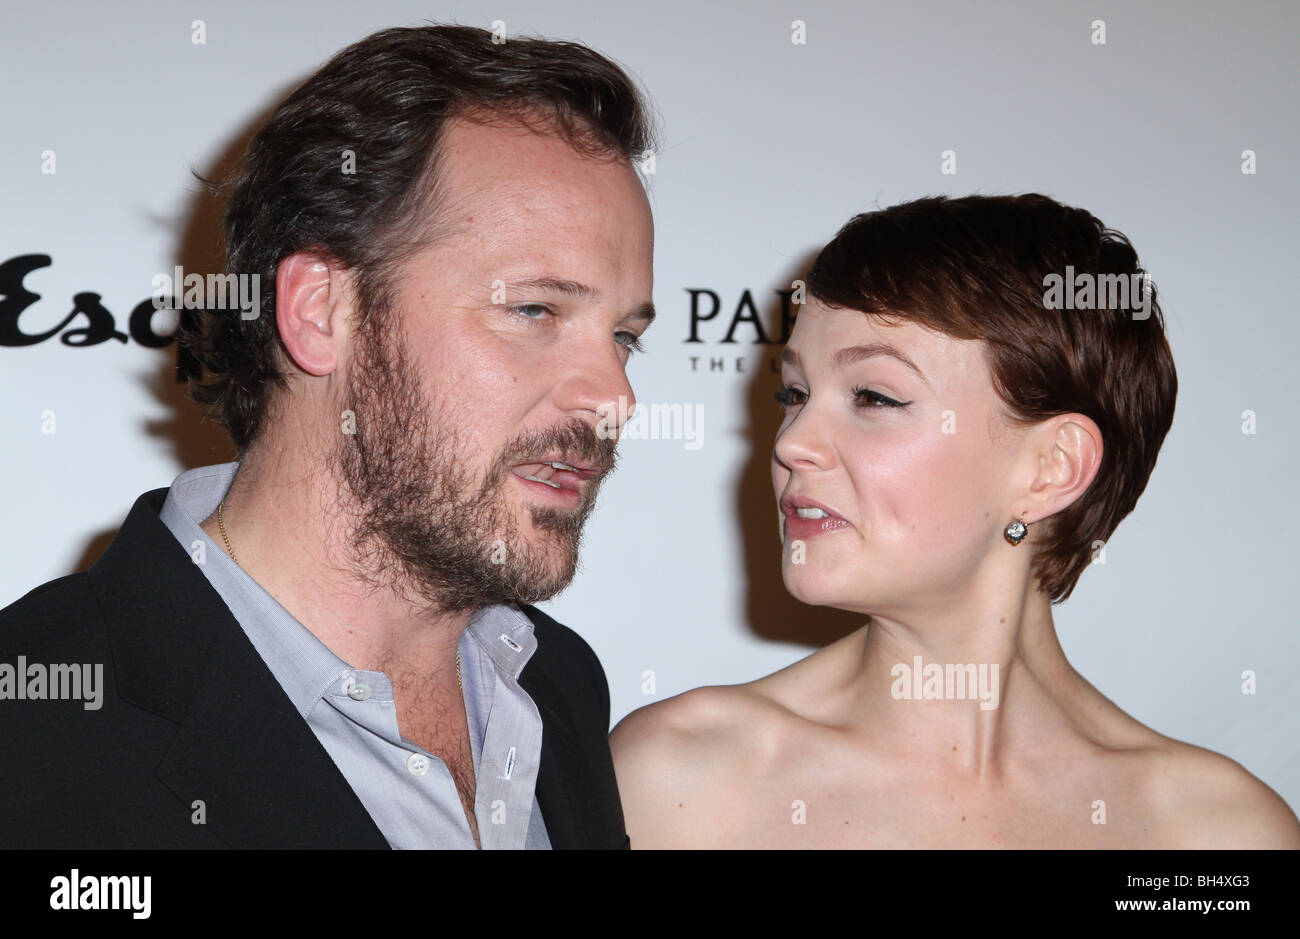 PETER SARSGAARD CAREY MULLIGAN AN EDUCATION LOS ANGELES PREMIERE HOLLYWOOD LOS ANGELES CA USA 01 October 2009 - Stock Image